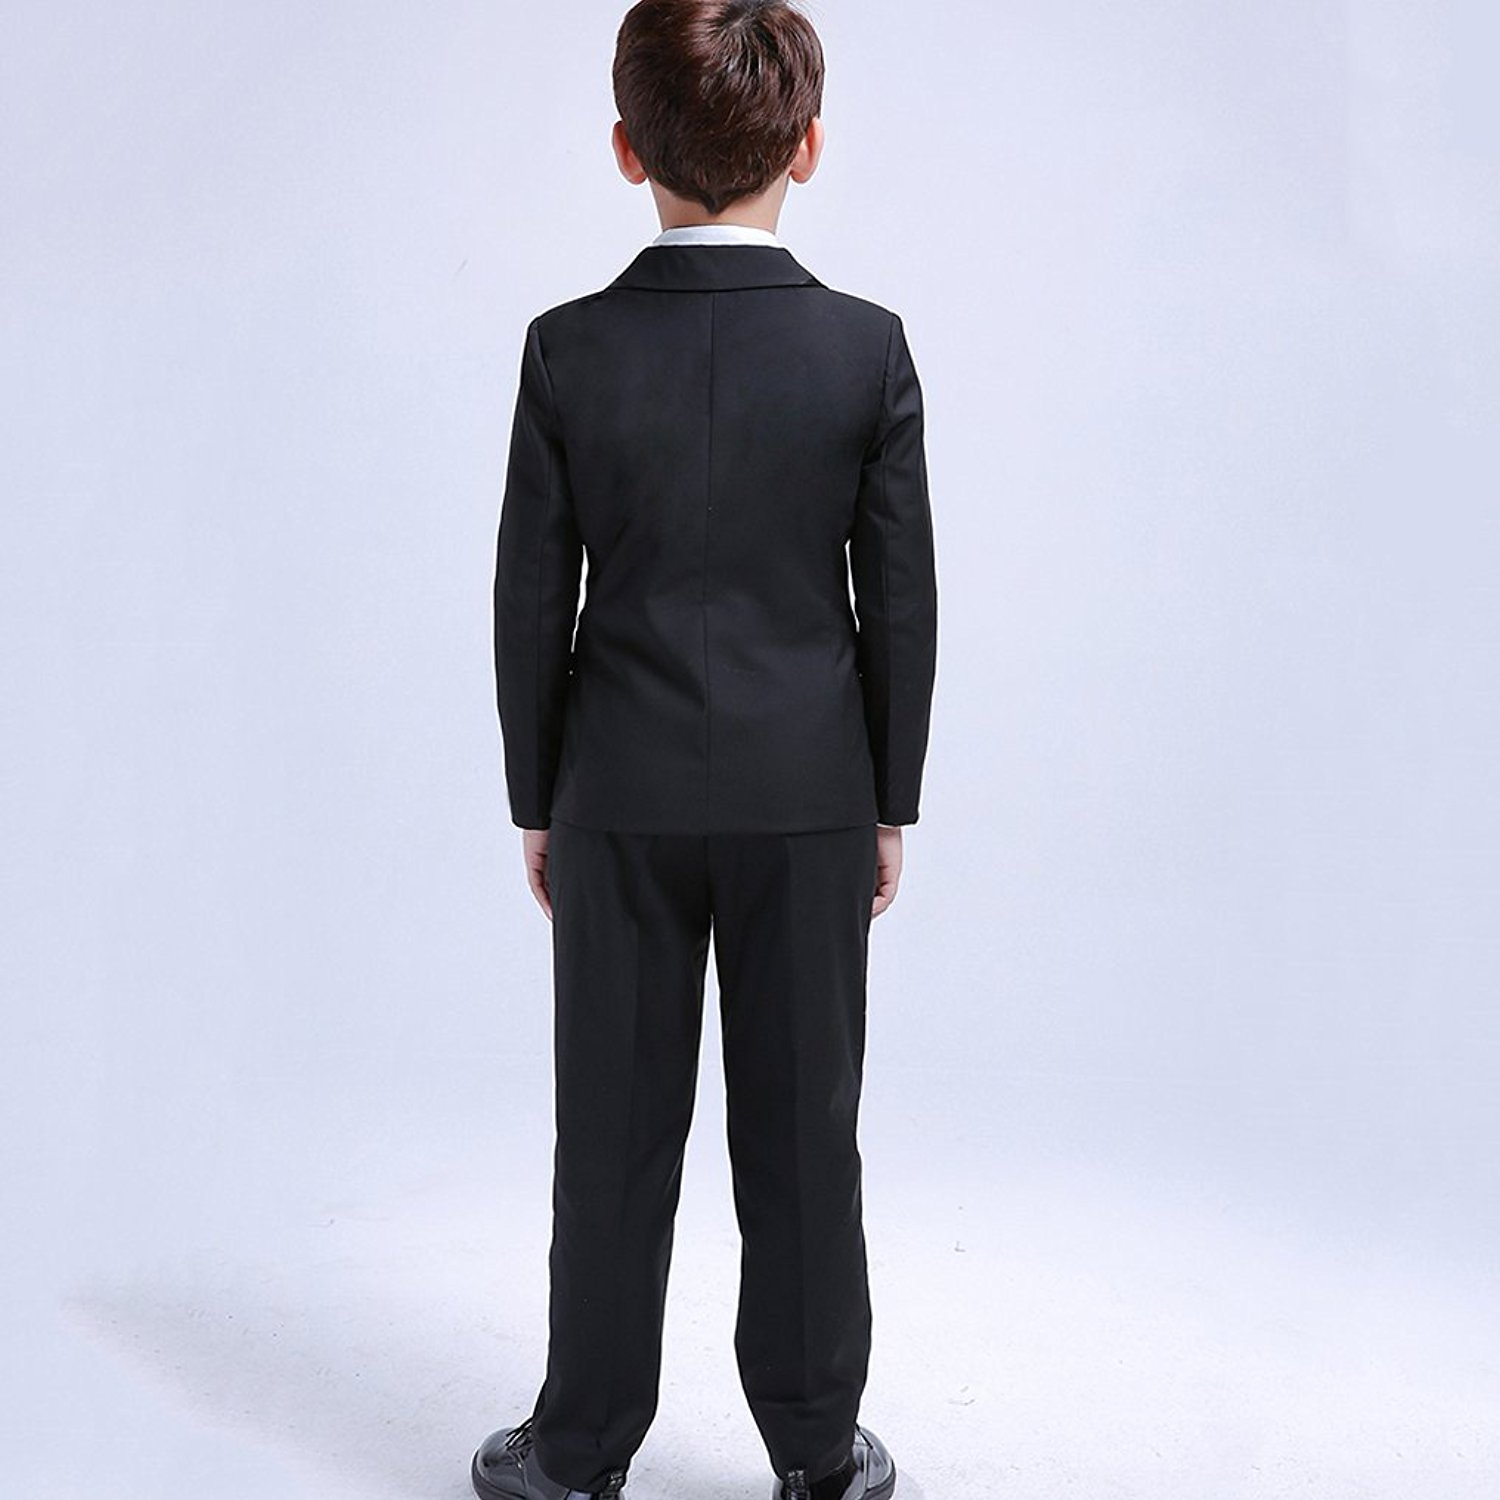 35bf41b1d0da 7 Pcs Classic Boys Suits for Weddings Formal Blazer Kids Tuxedo ...